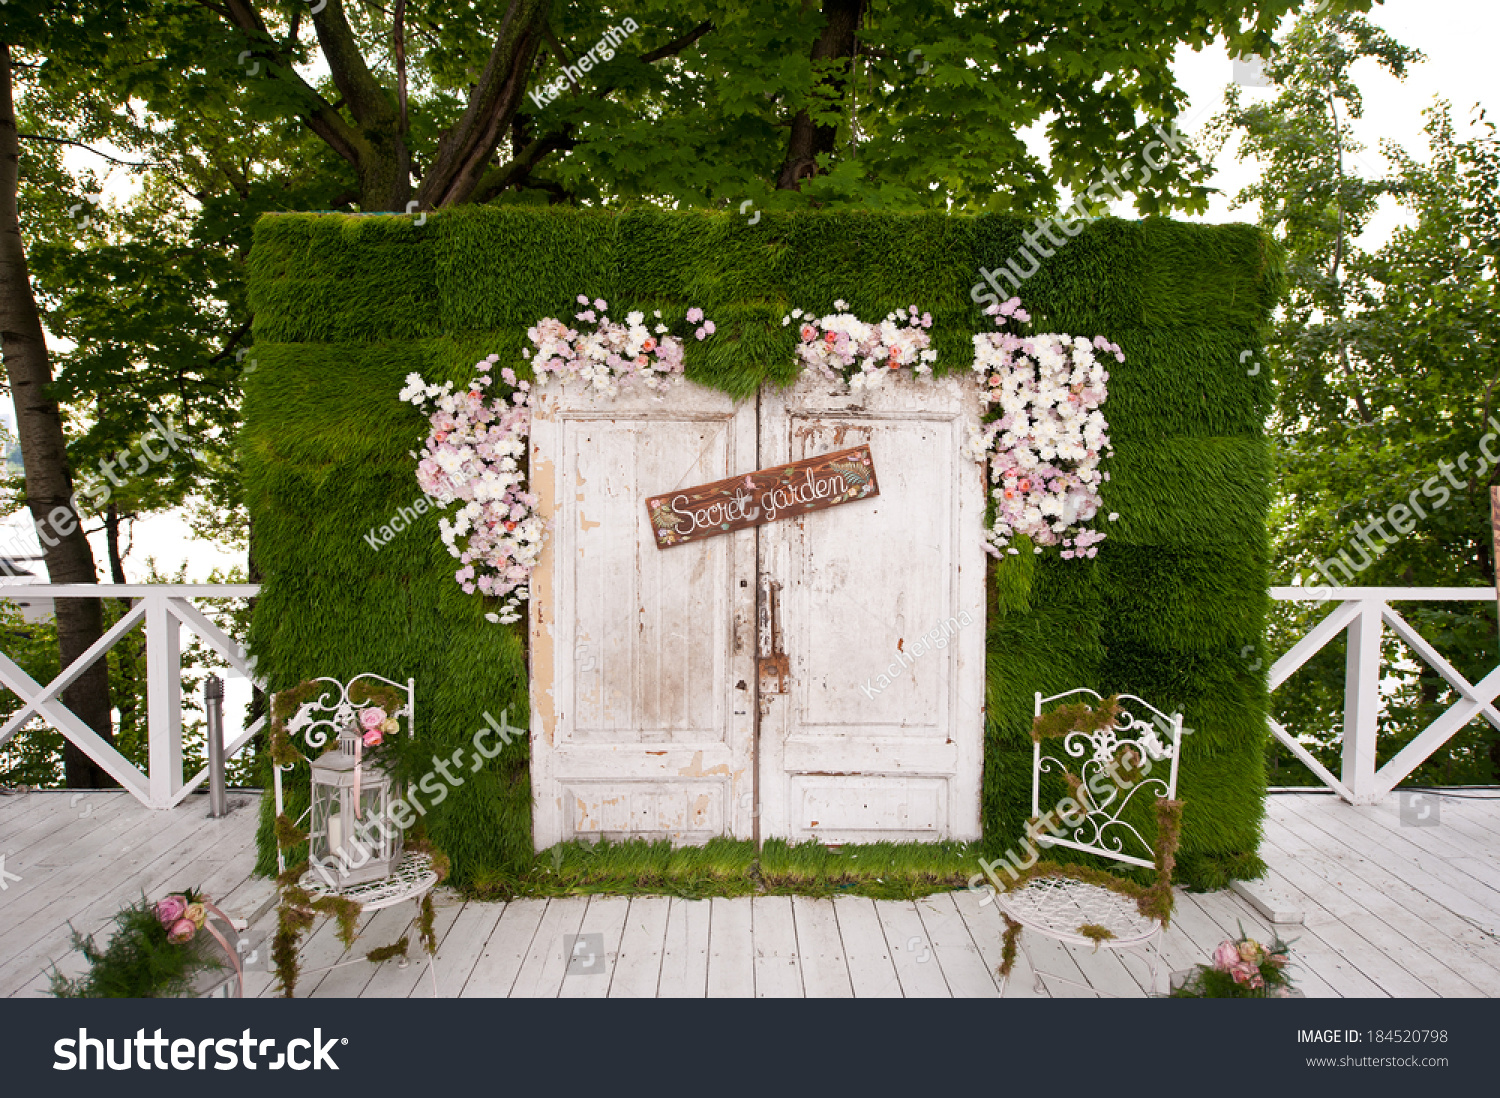 Decor Photobooth Wedding Photo Booth Decoration Stock Photo 184520798 Avopix